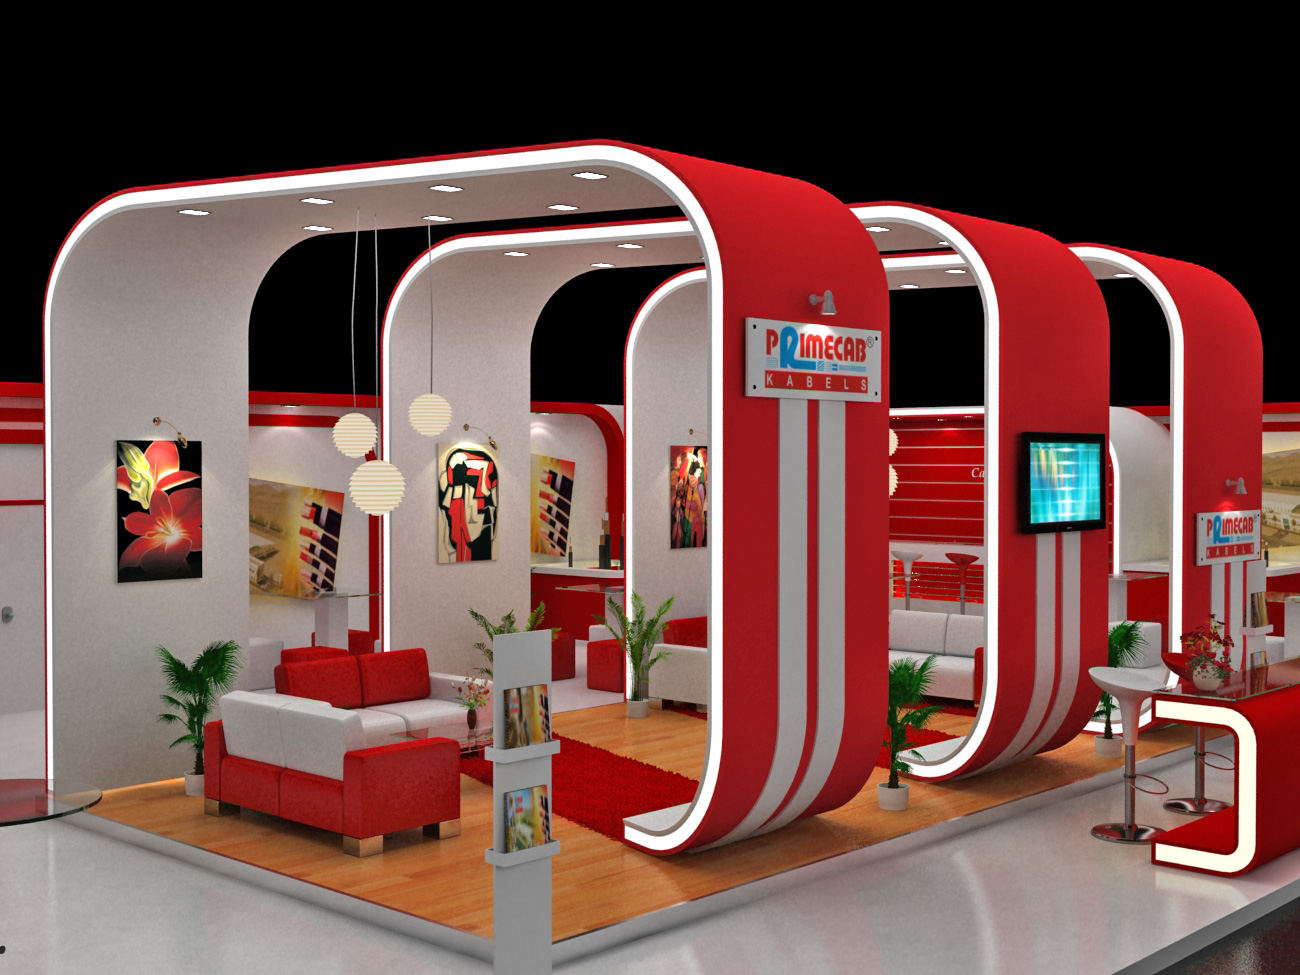 Exhibition Stall Styles : Exhibition stall designs by dnyansagar sapkale at coroflot